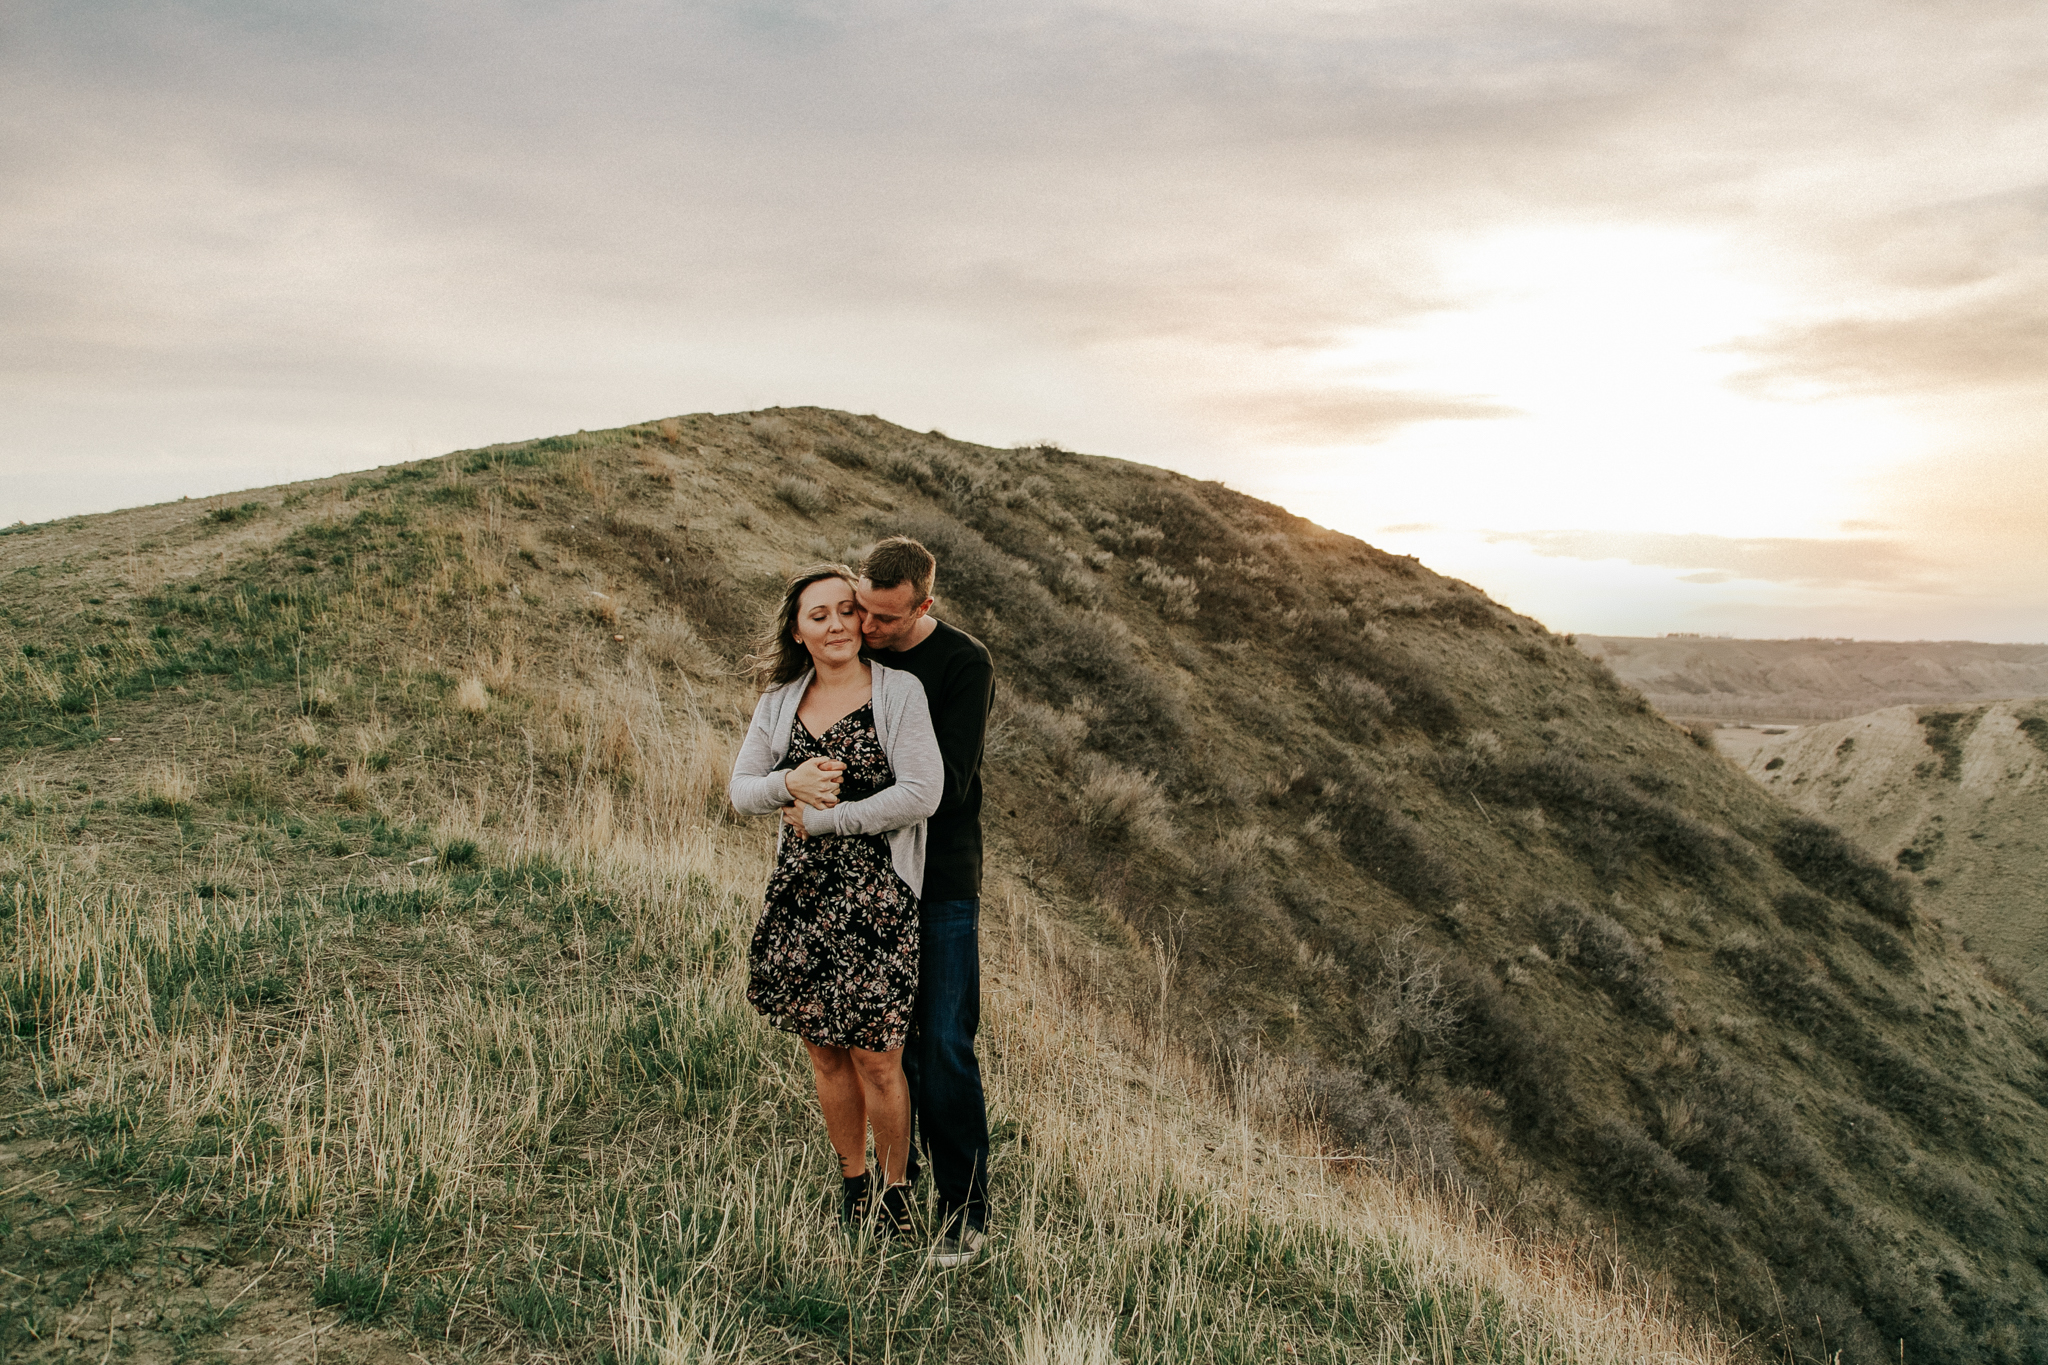 lethbridge-photographer-love-and-be-loved-photography-jessica-john-engagement-picture-image-photo-19.jpg